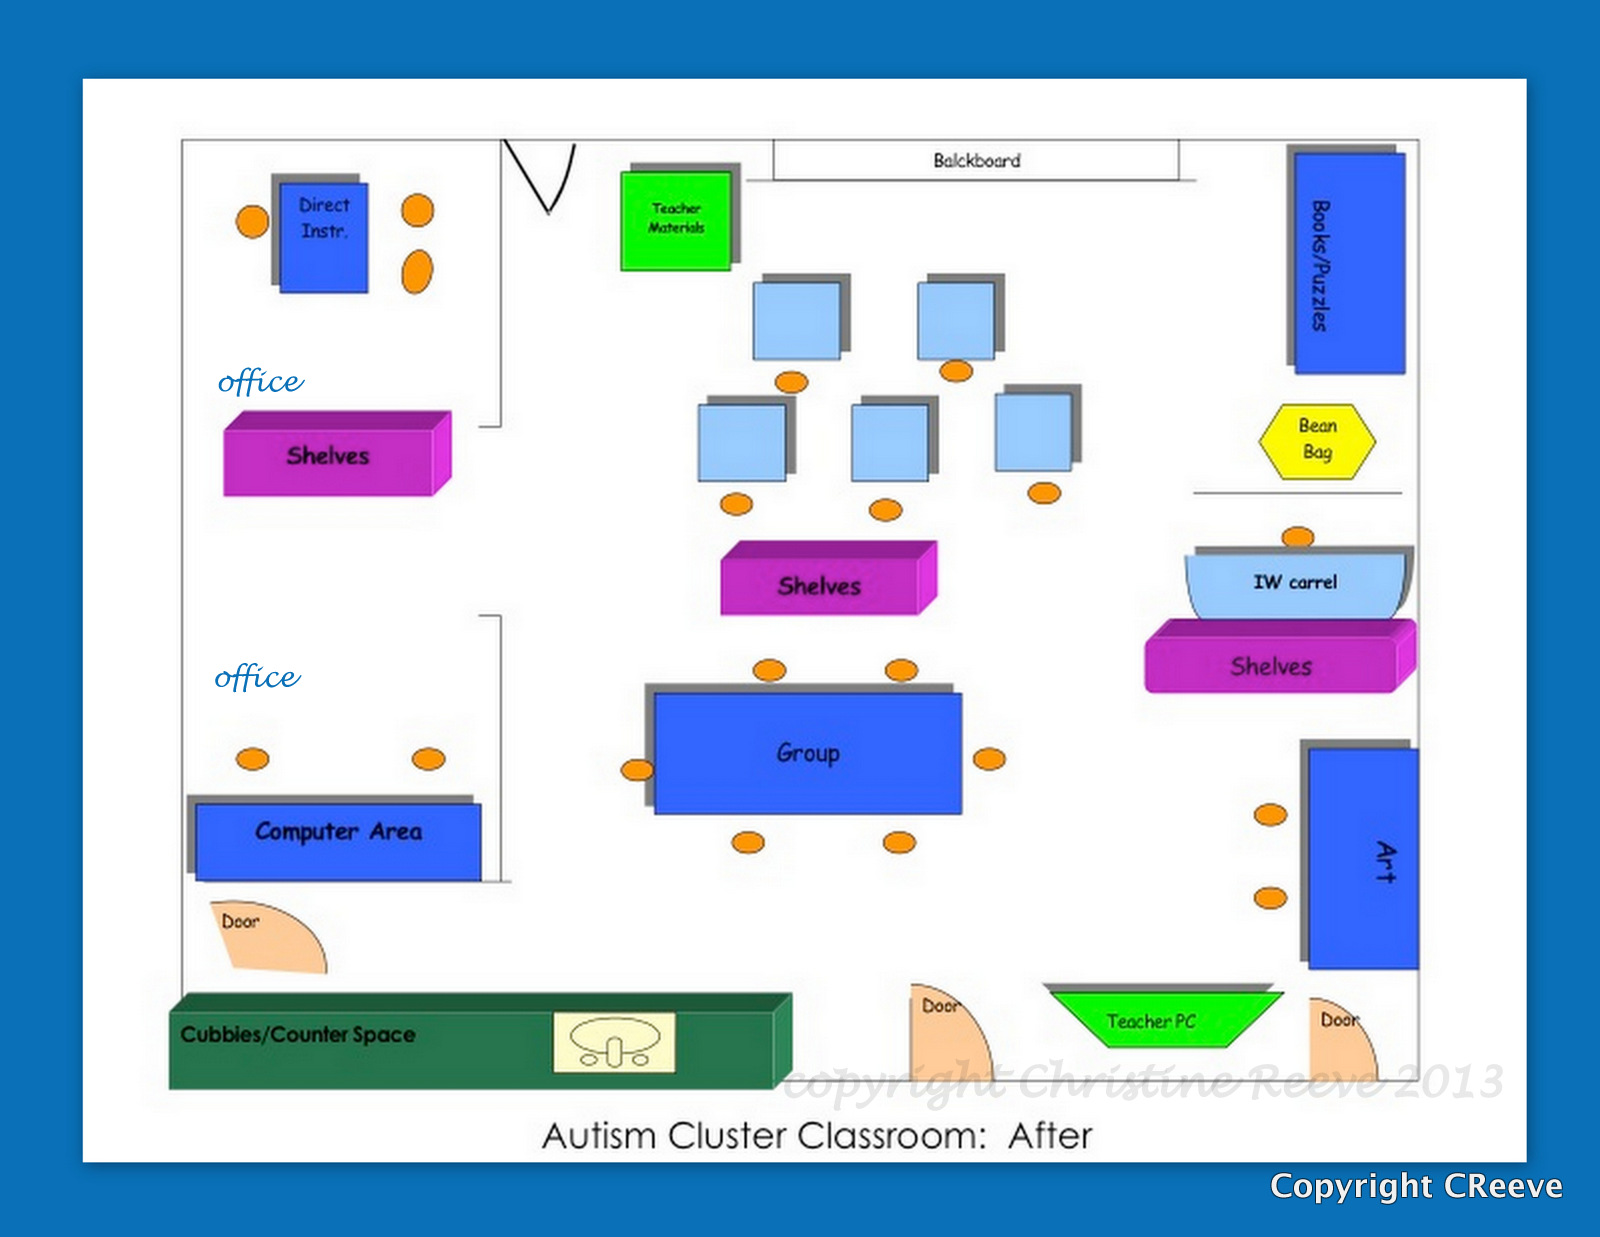 Classroom Design For Autism ~ Back to school setting up classrooms for students with